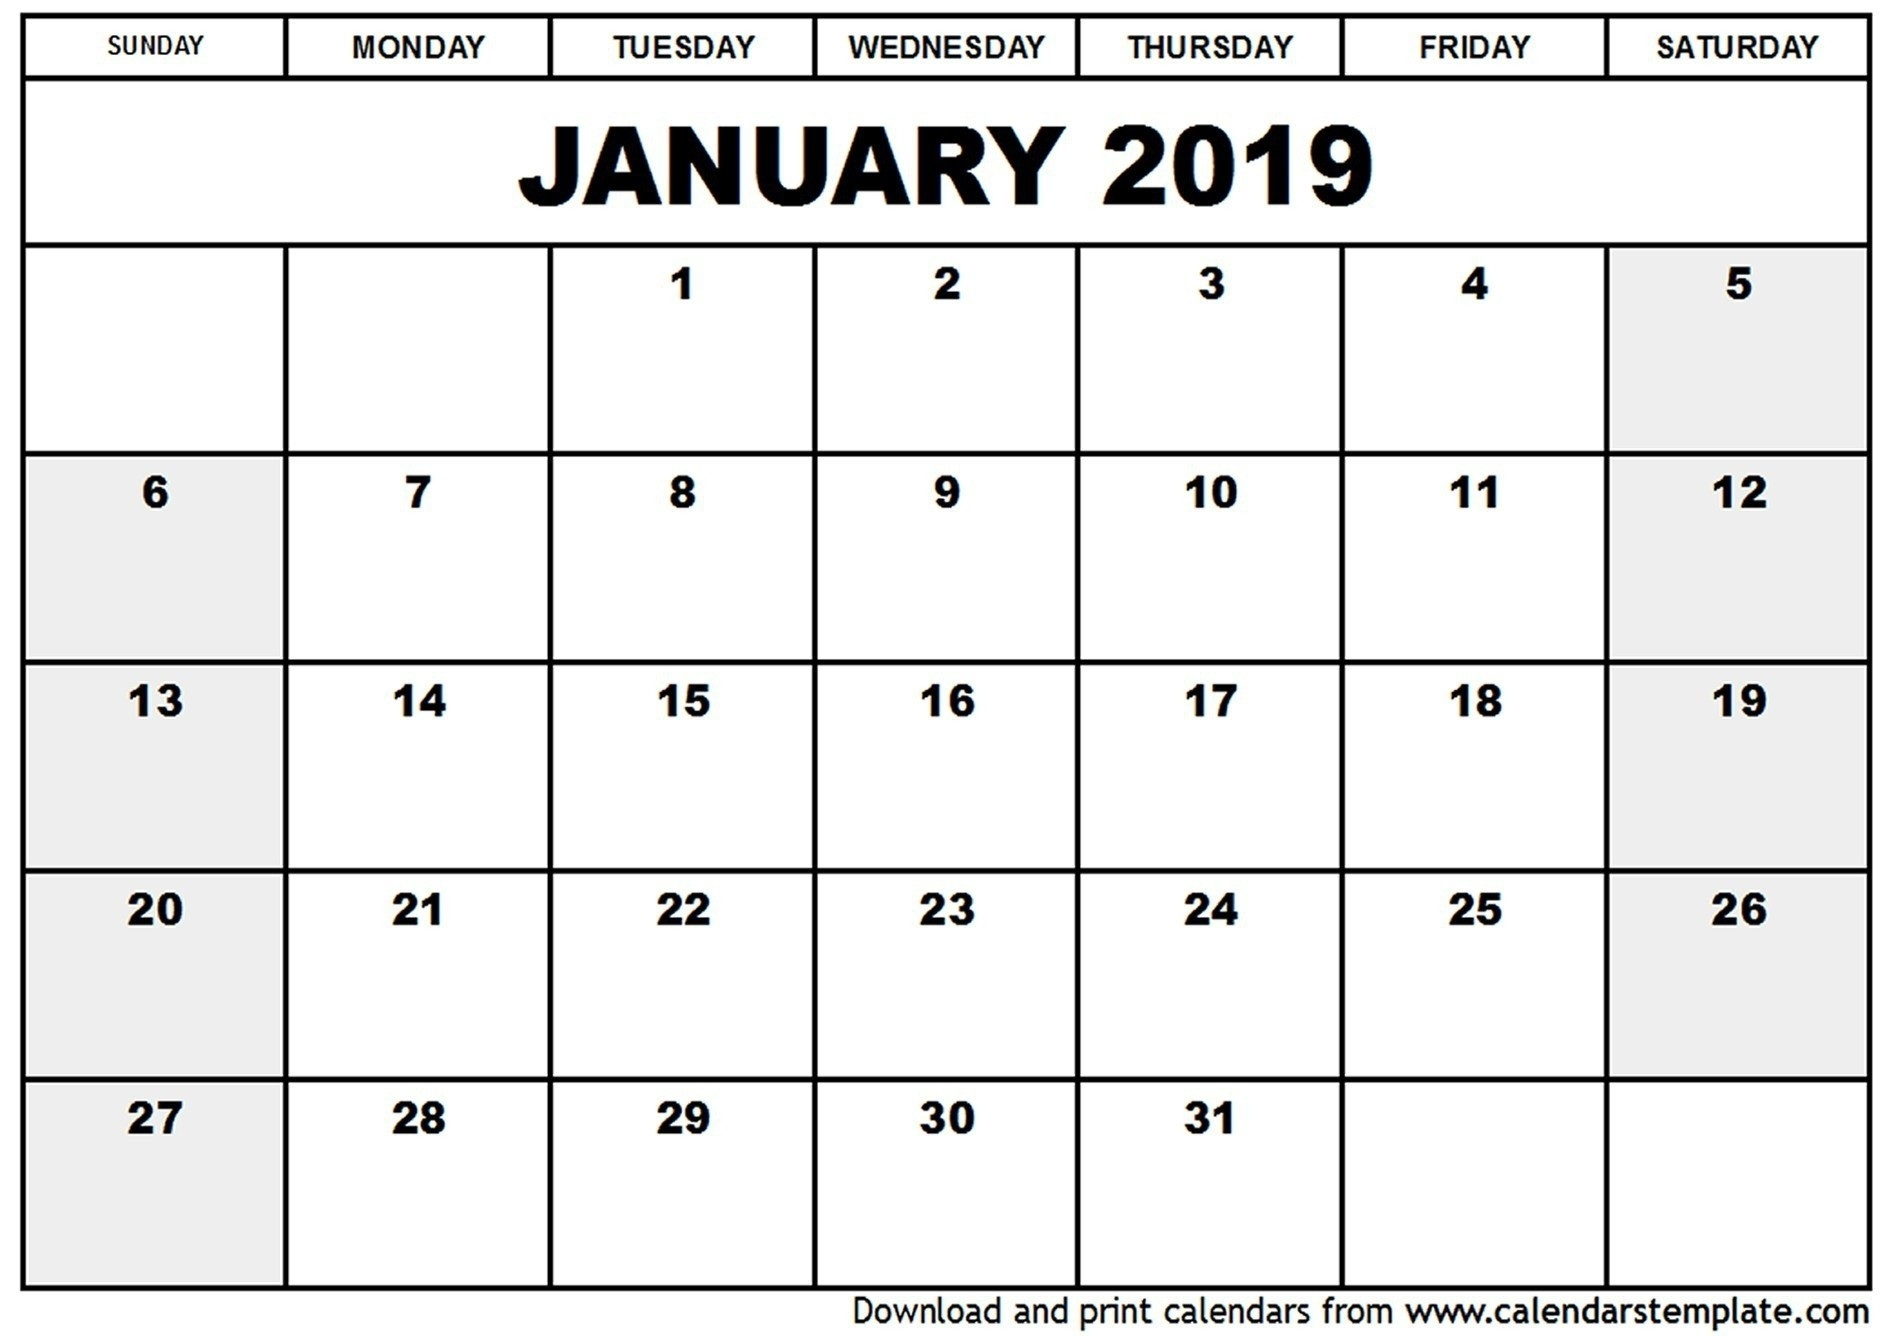 Blank Fillable Calendar 2019 – Template Calendar Design-Free Fill In Calendars 2021